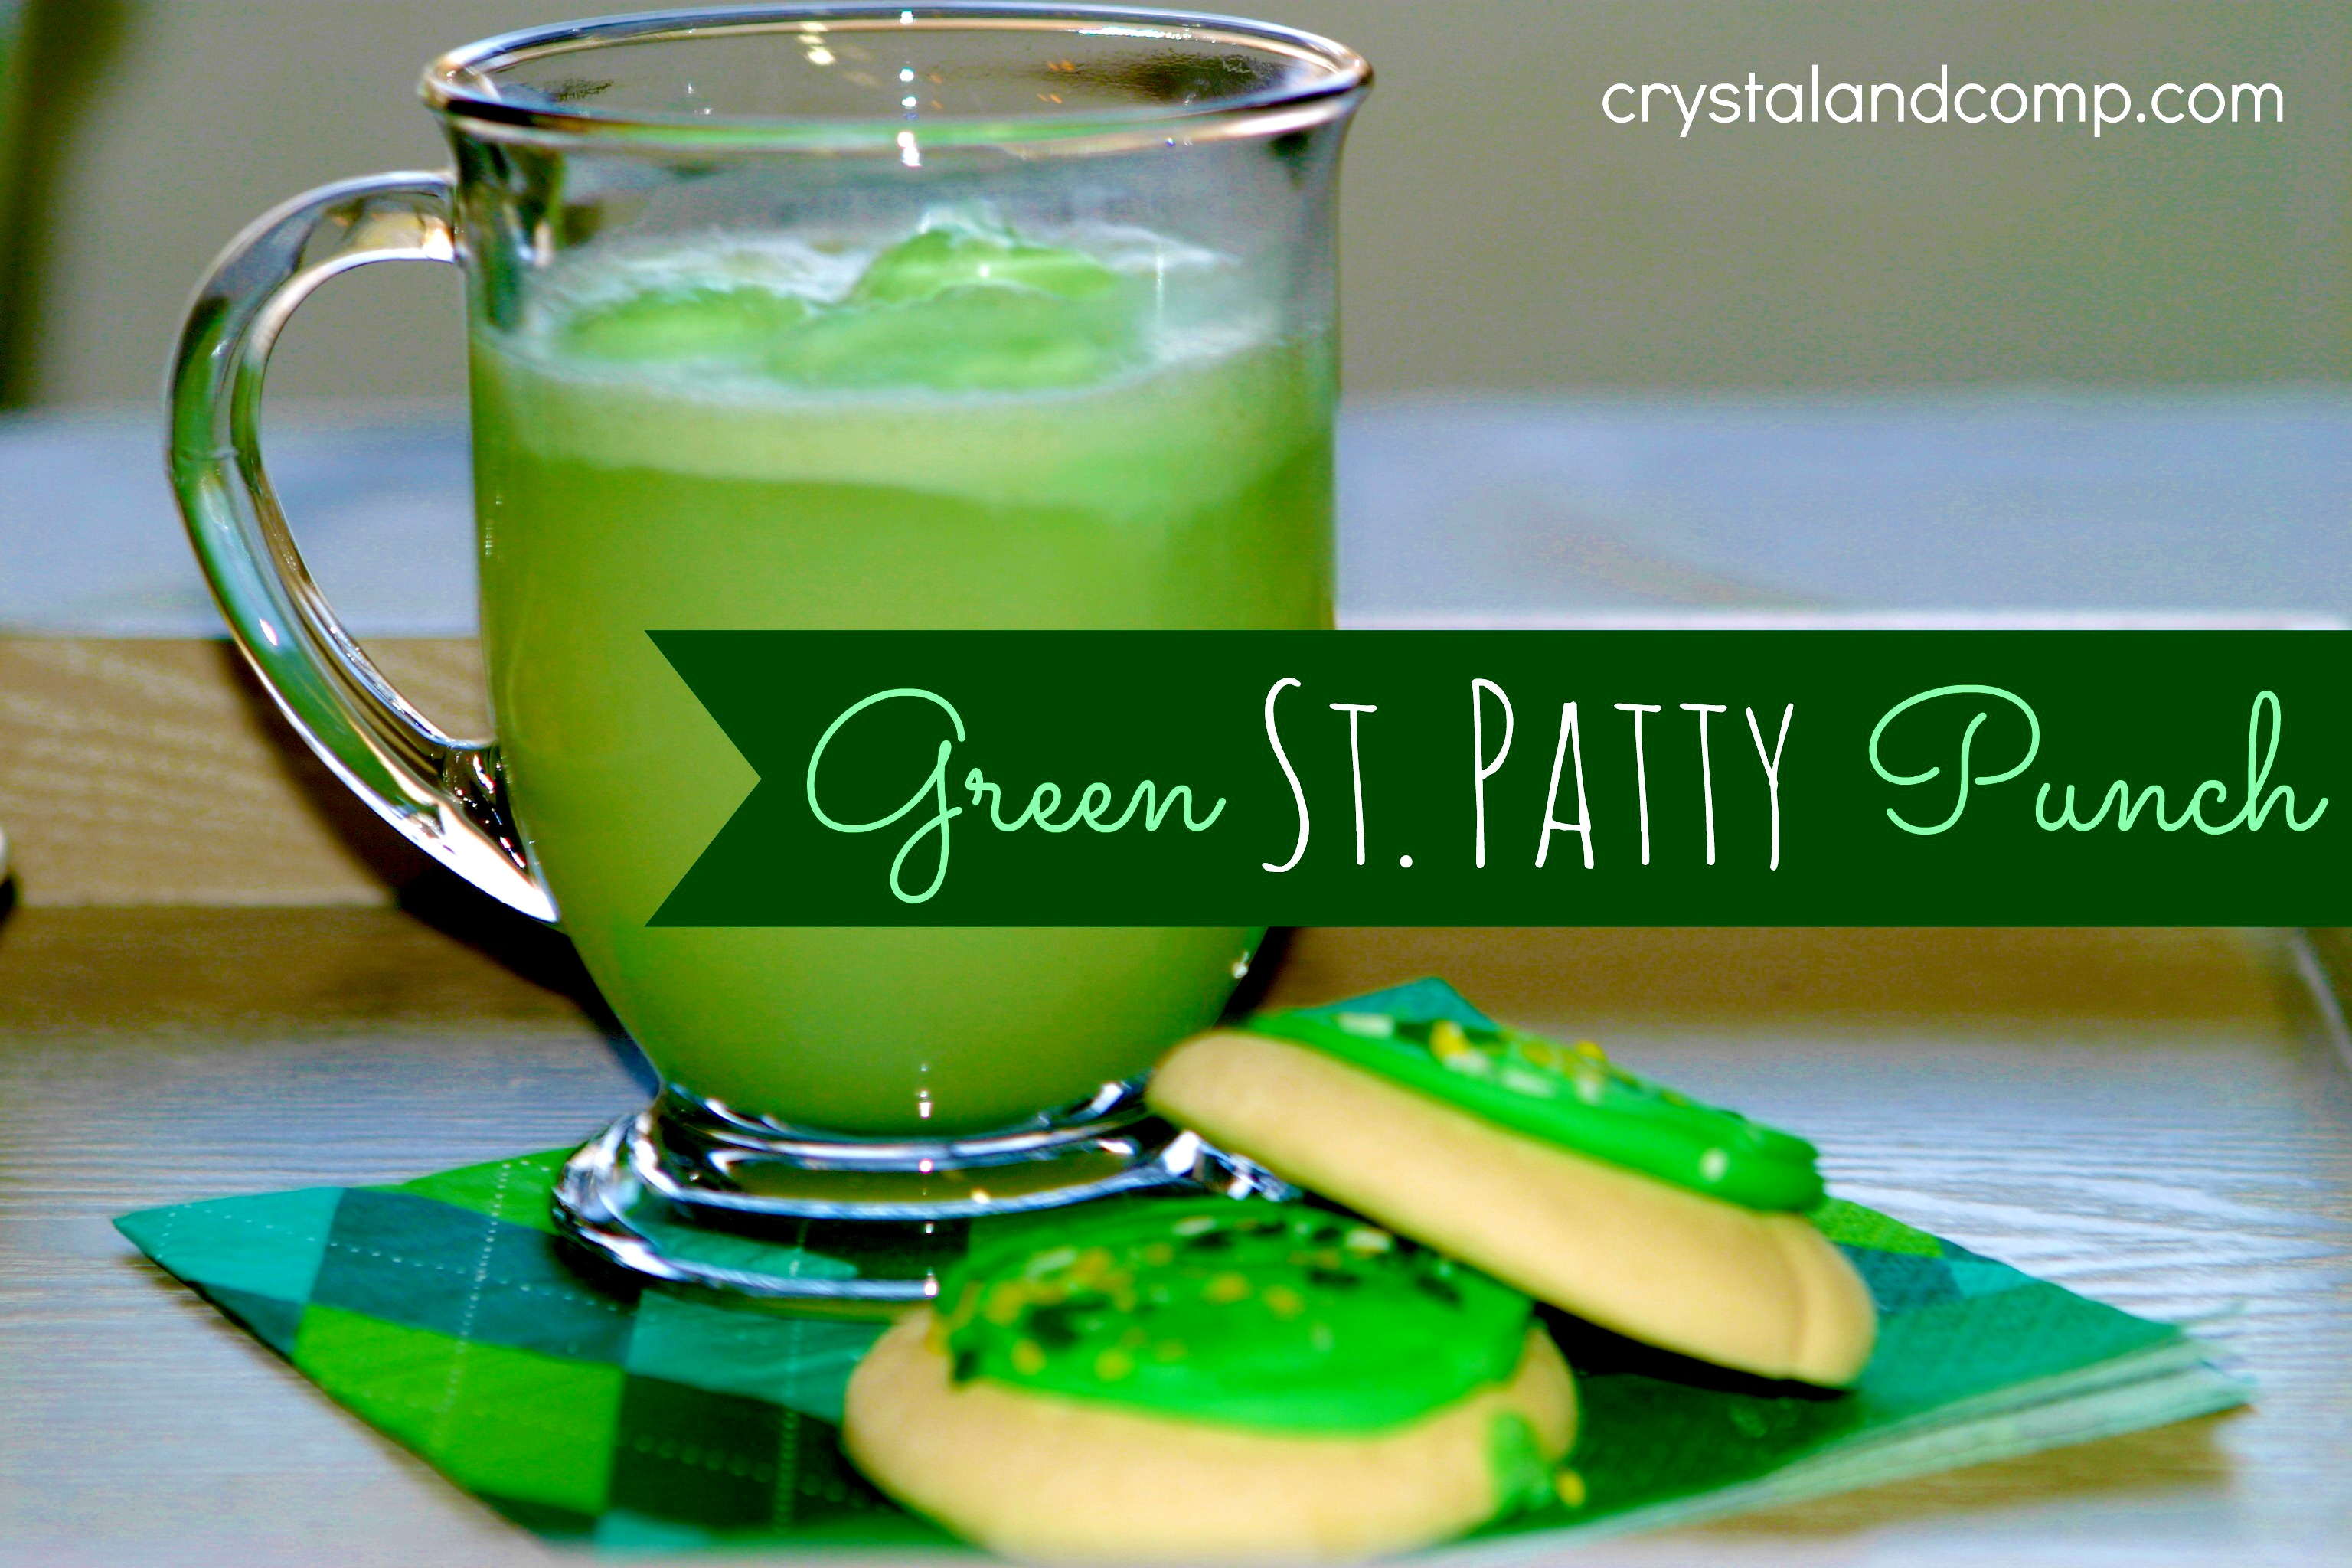 St pattys day crafts - St Patrick Day Crafts How To Make Green Punch